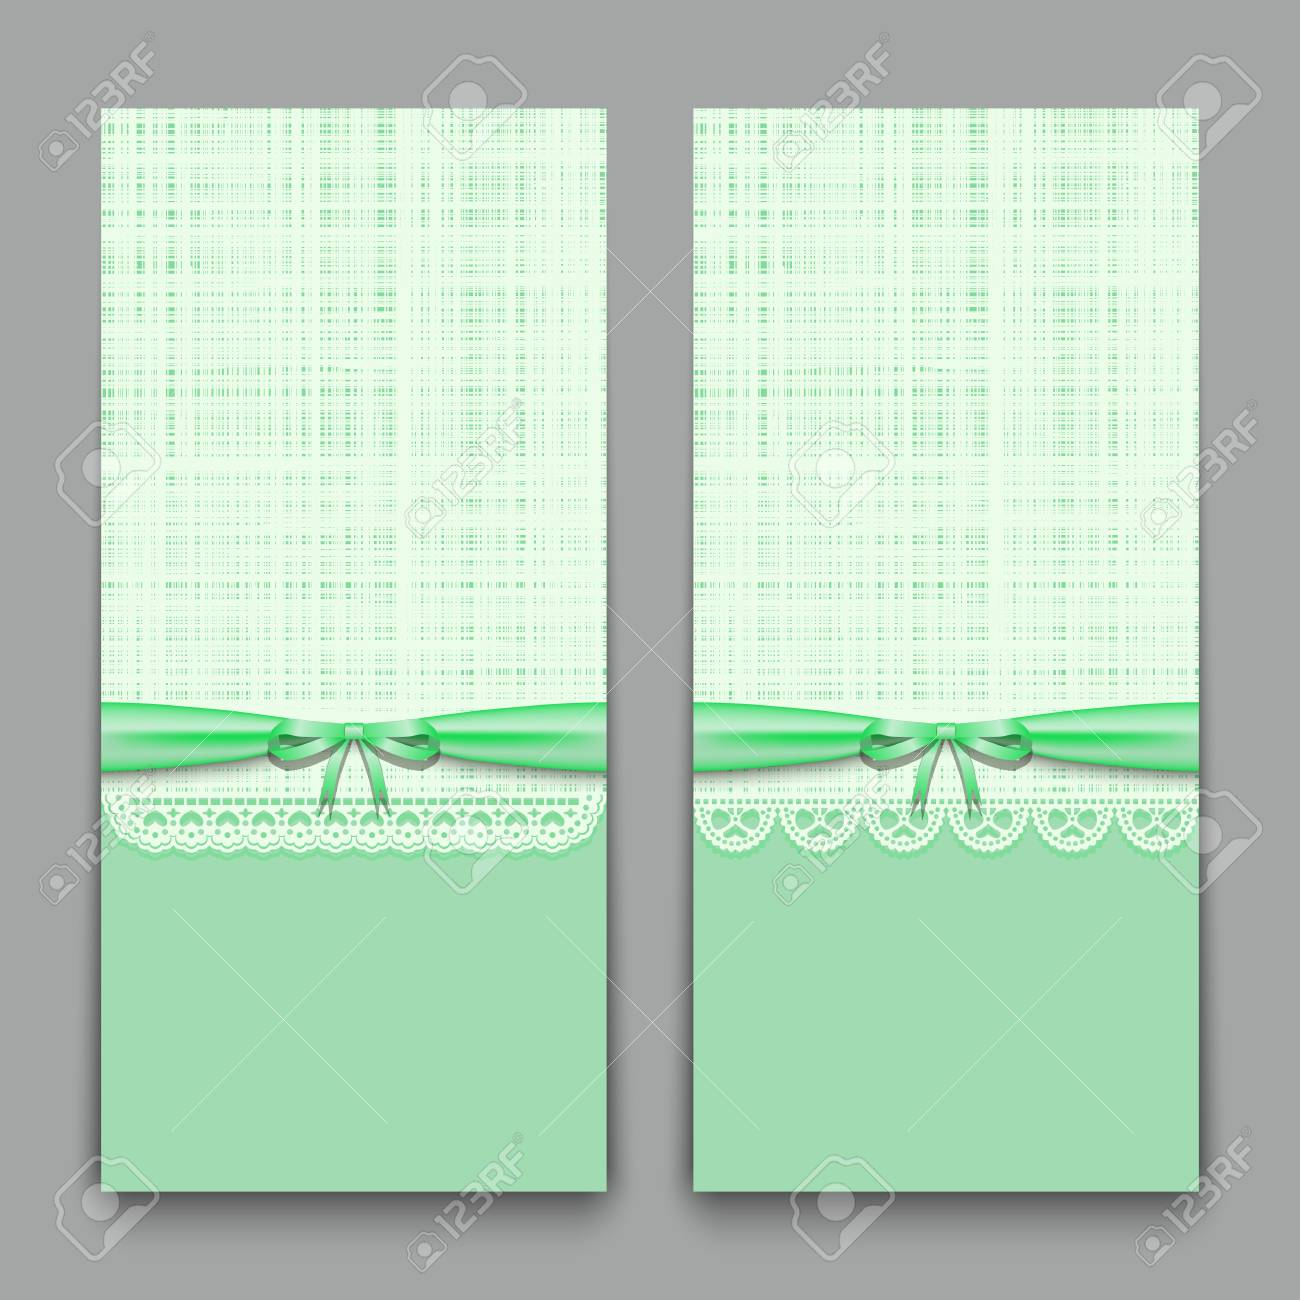 Lacy Green Cards With Ribbon And Bow Template For Wedding